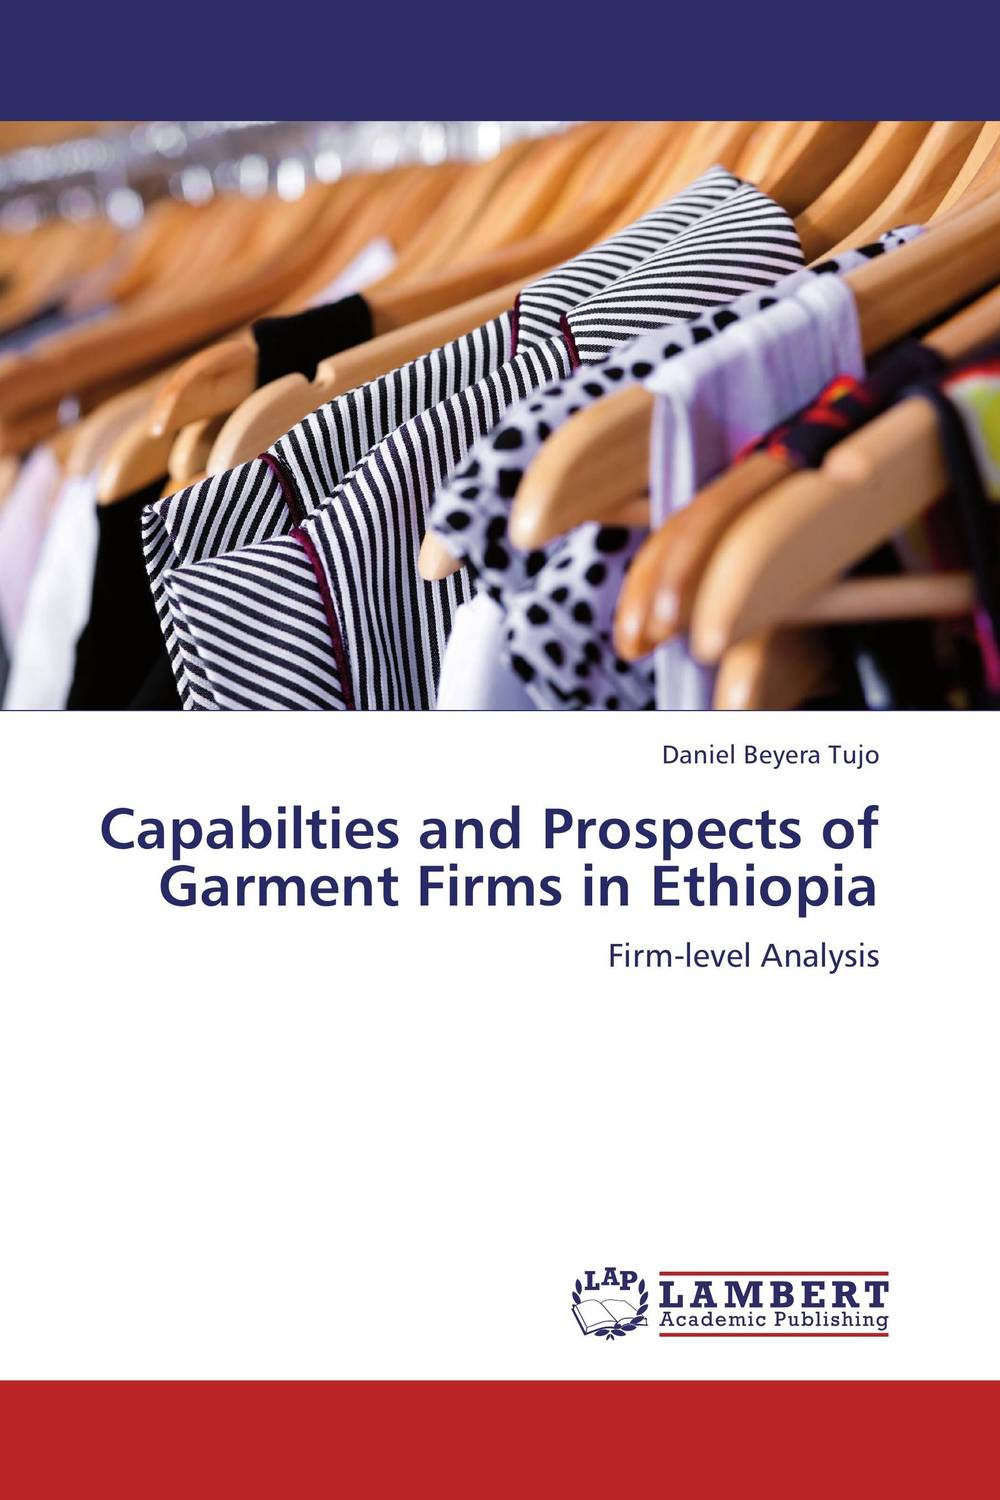 Фото Capabilties and Prospects of Garment Firms in Ethiopia cervical cancer in amhara region in ethiopia